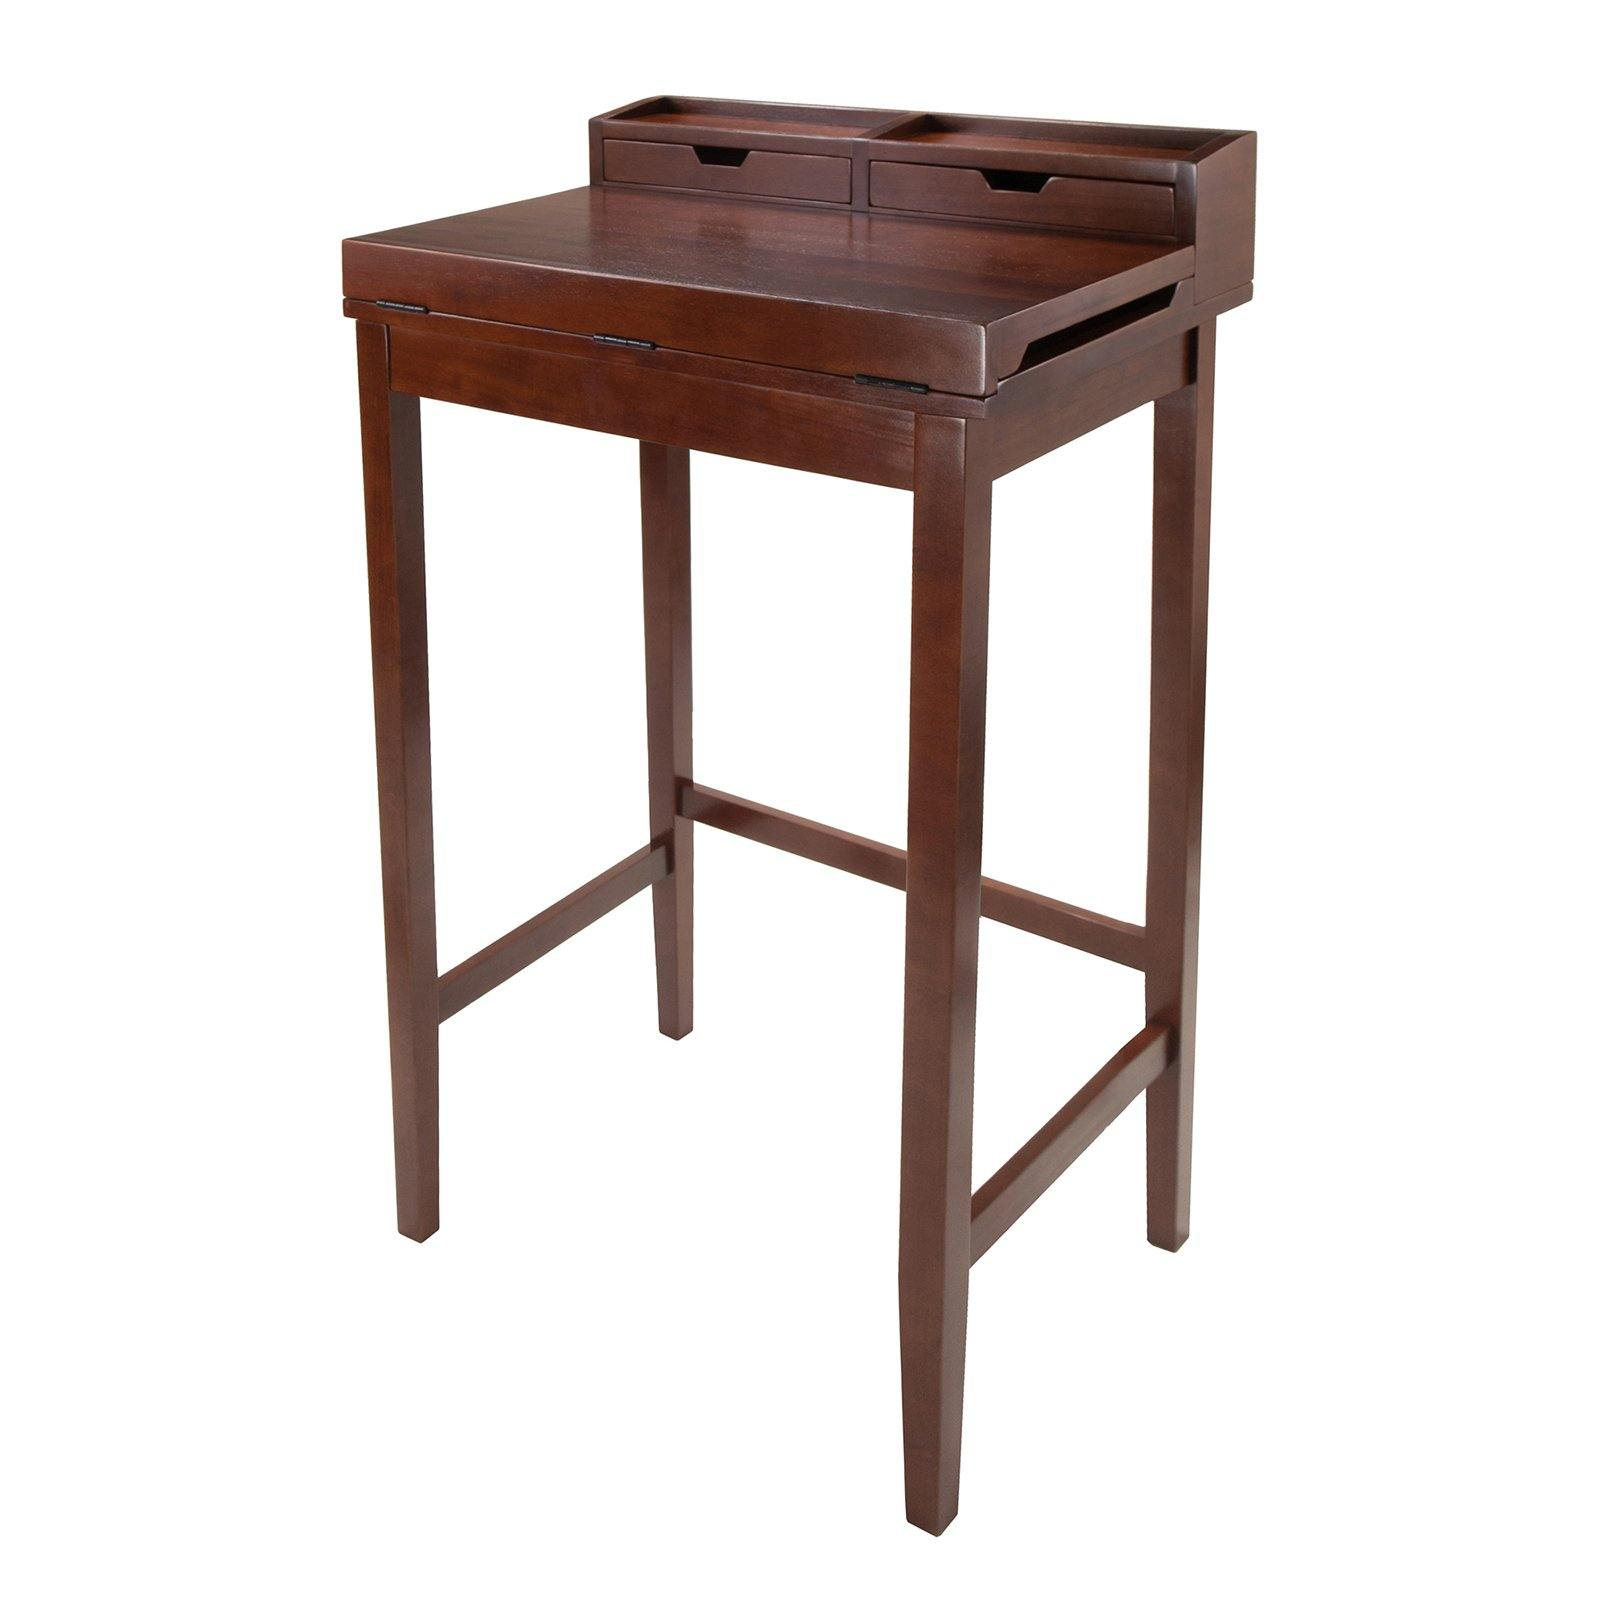 Brighton High Desk with 2 Drawers - My USA Furniture